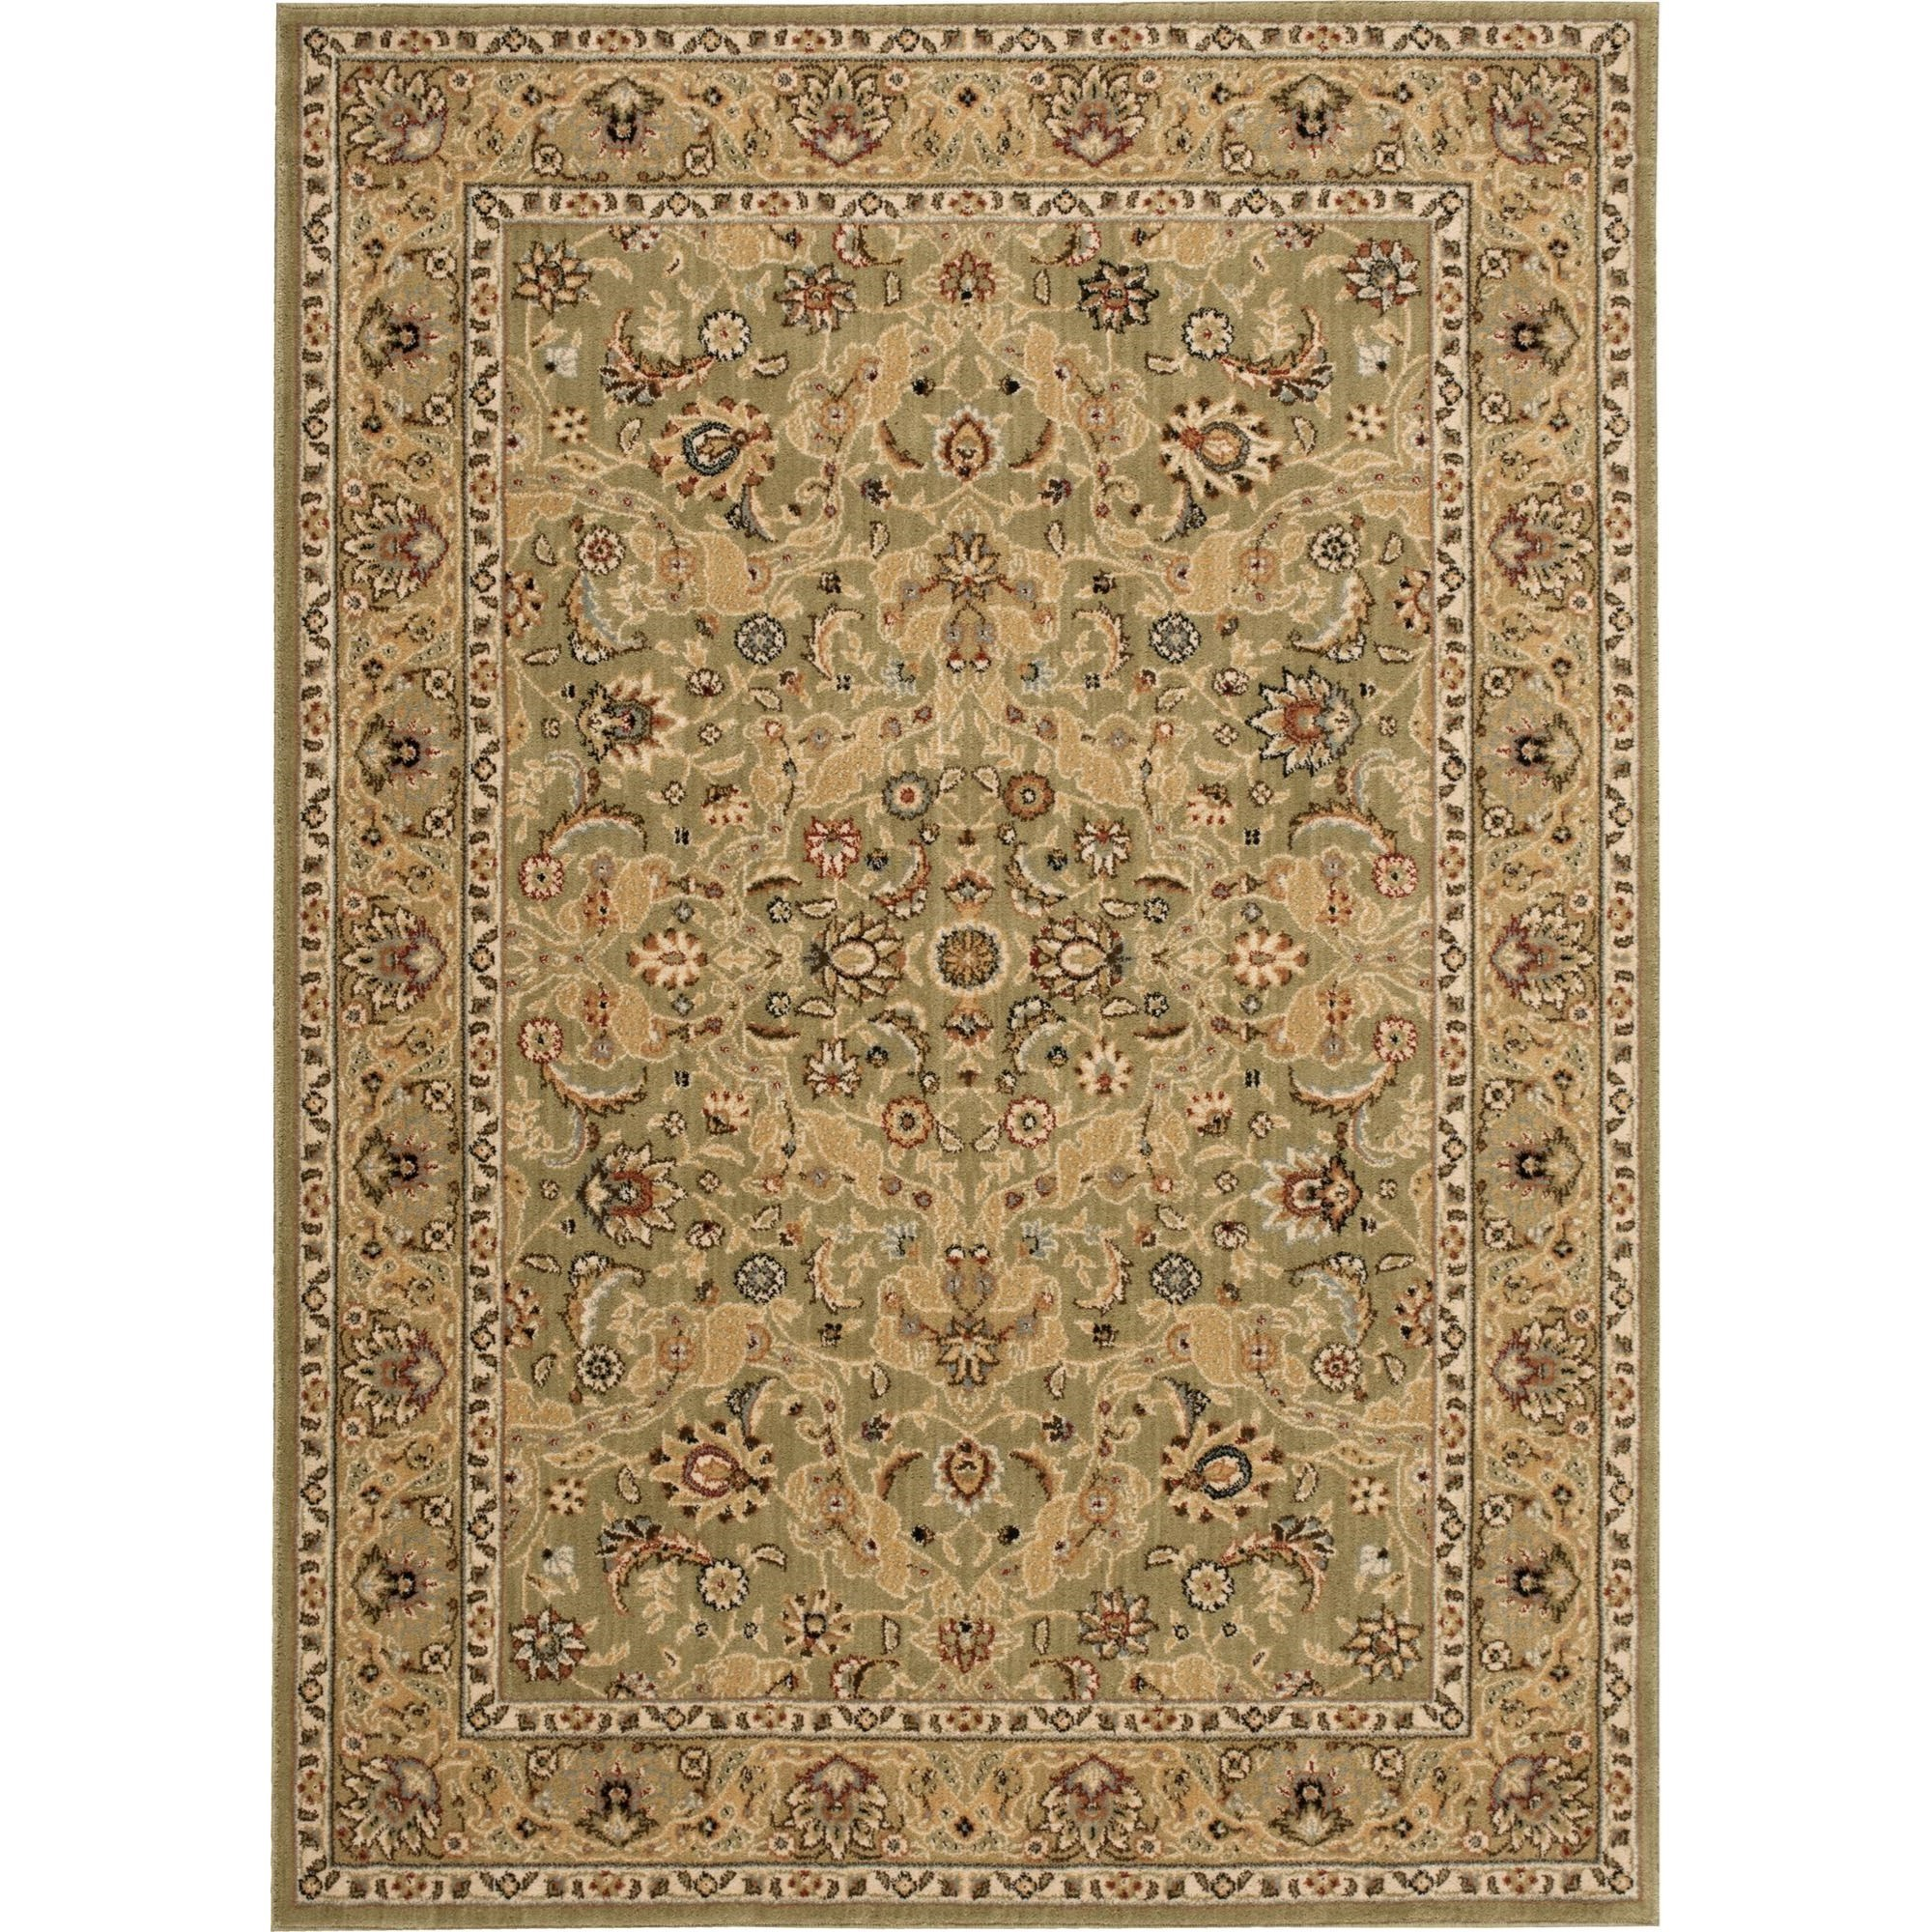 "Nourison Kathy Ireland Home presents Lumiere 3'6"" x 5'6"" Sage Area Rug - Item Number: 03557"